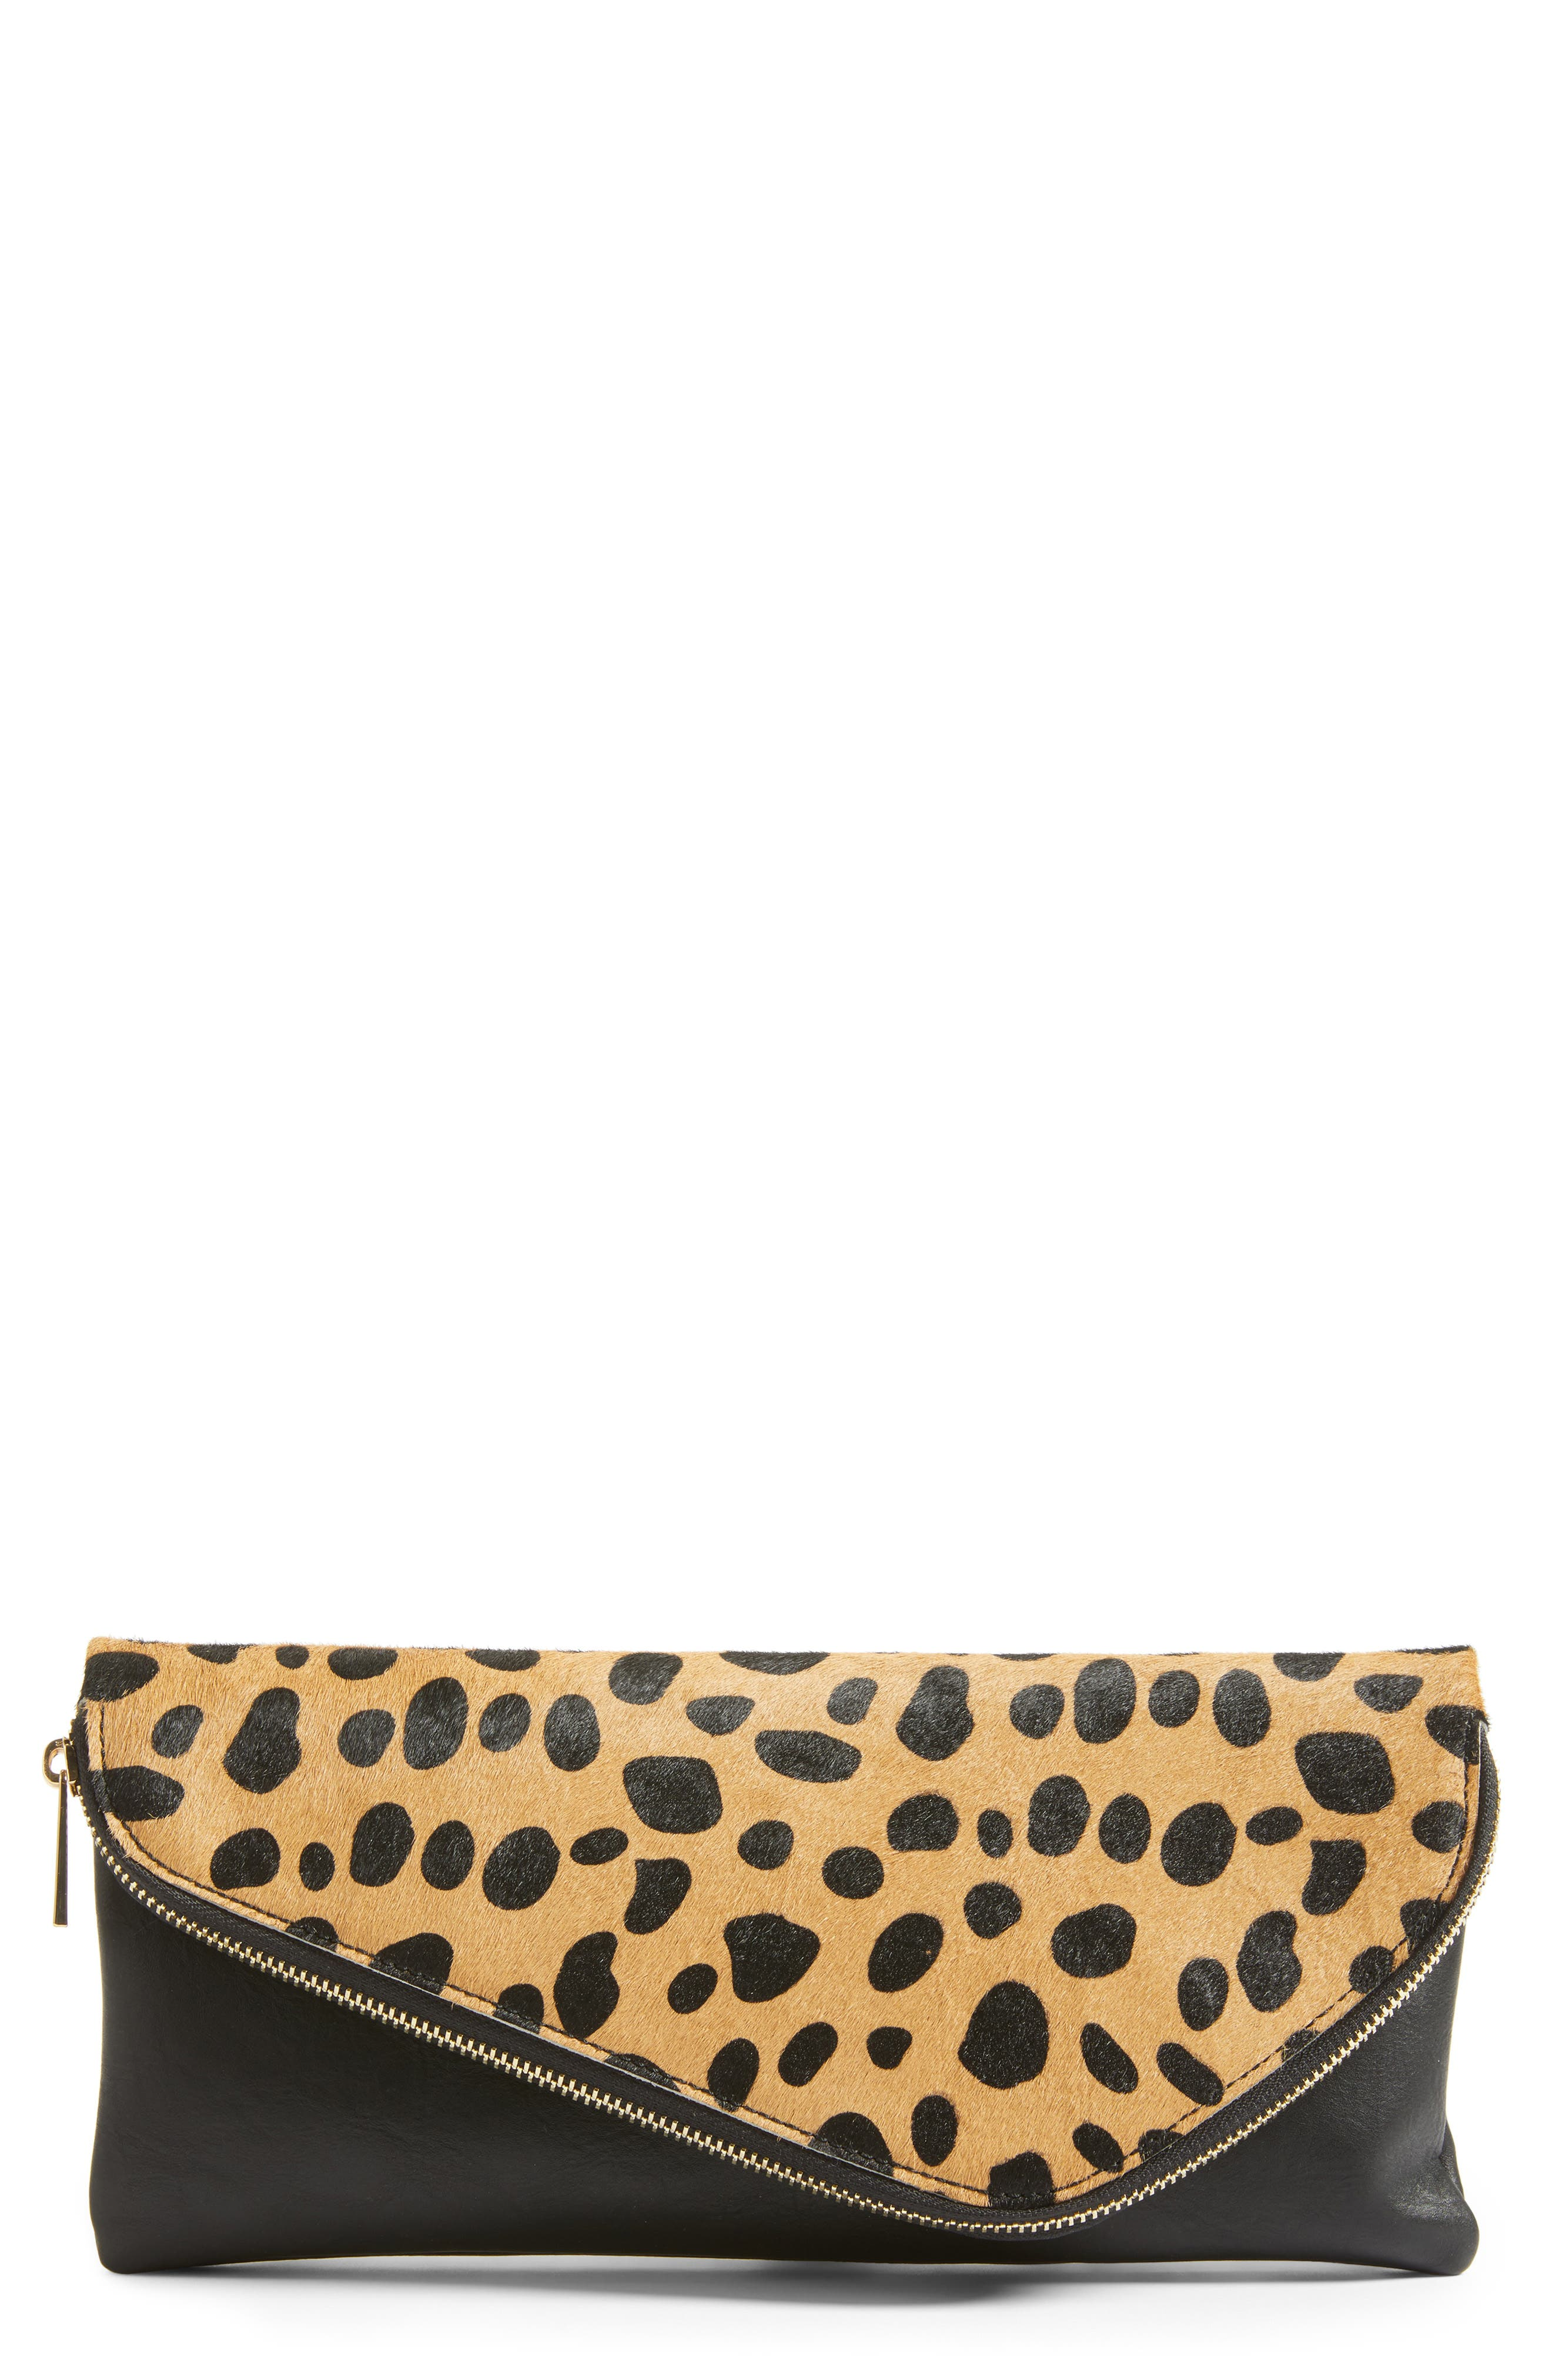 Alternate Image 1 Selected - Sole Society Tamika Genuine Calf Hair & Faux Leather Foldover Clutch